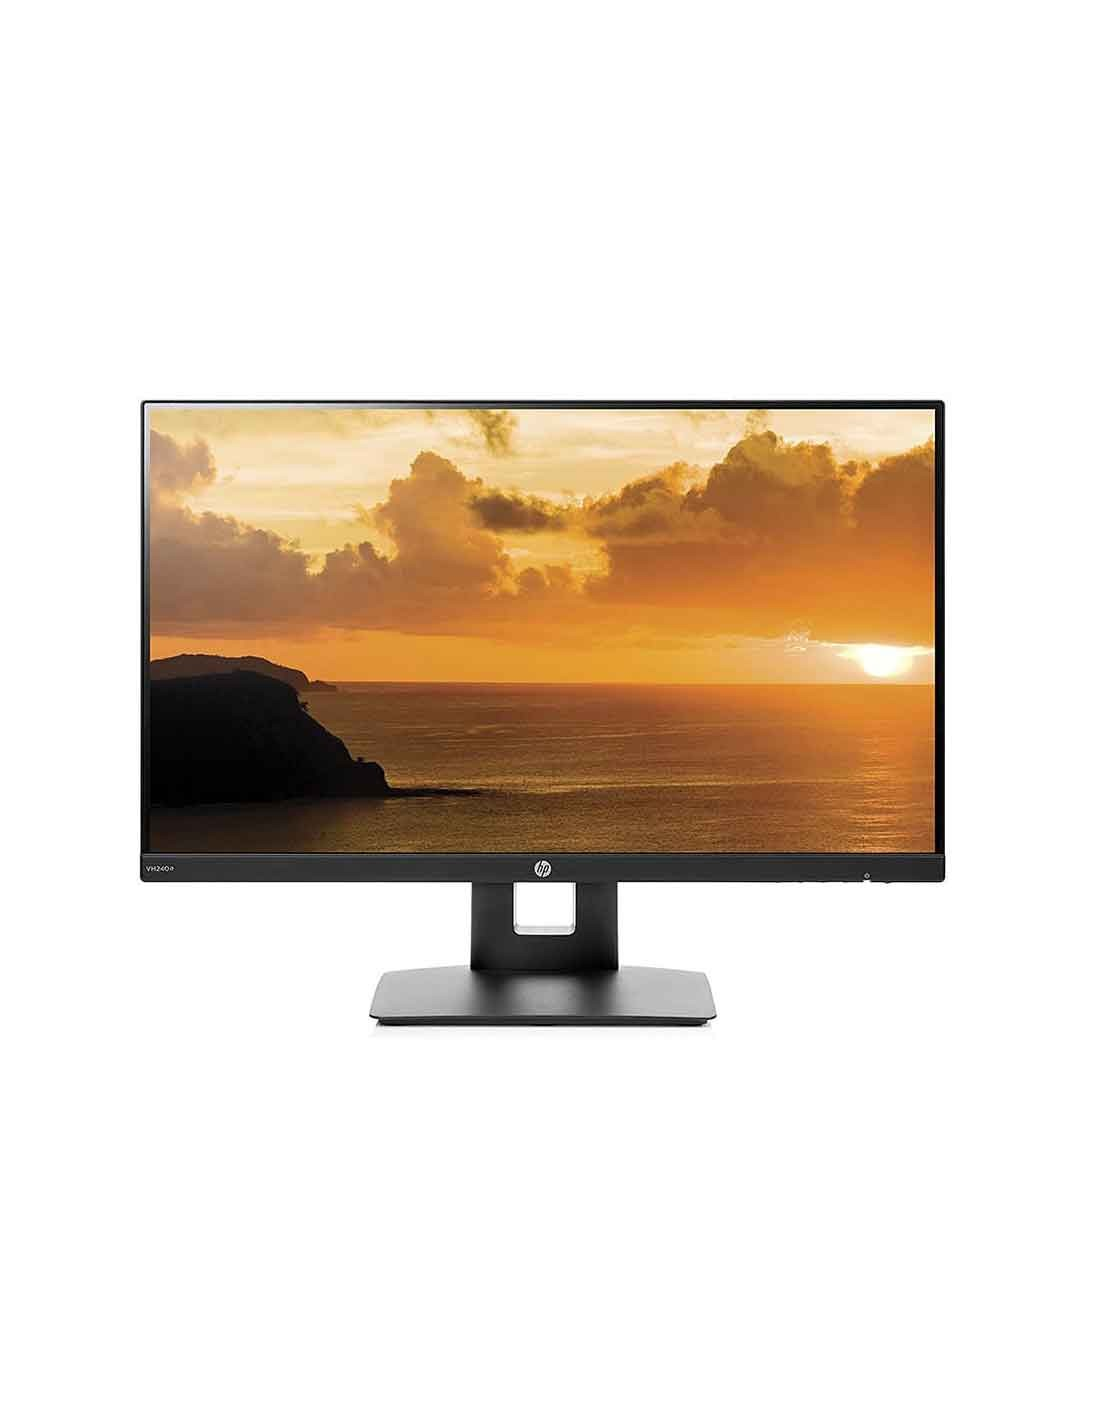 HP VH240a 23.8-inch Monitor images